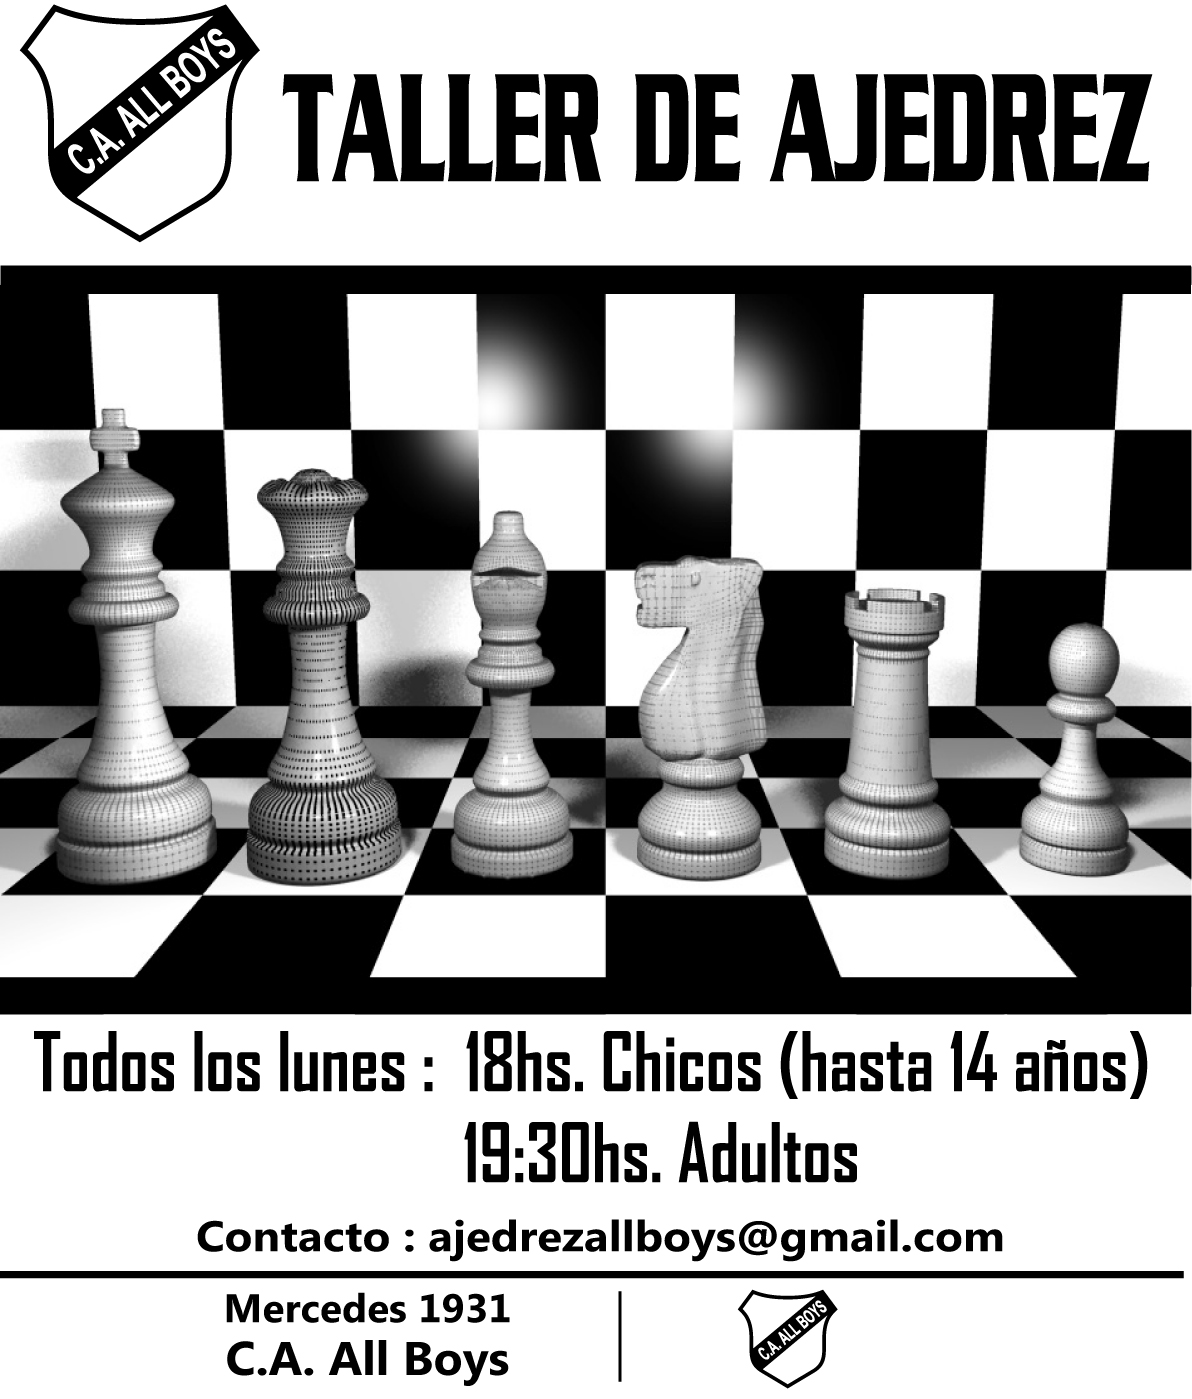 Taller de Ajedrez en All Boys